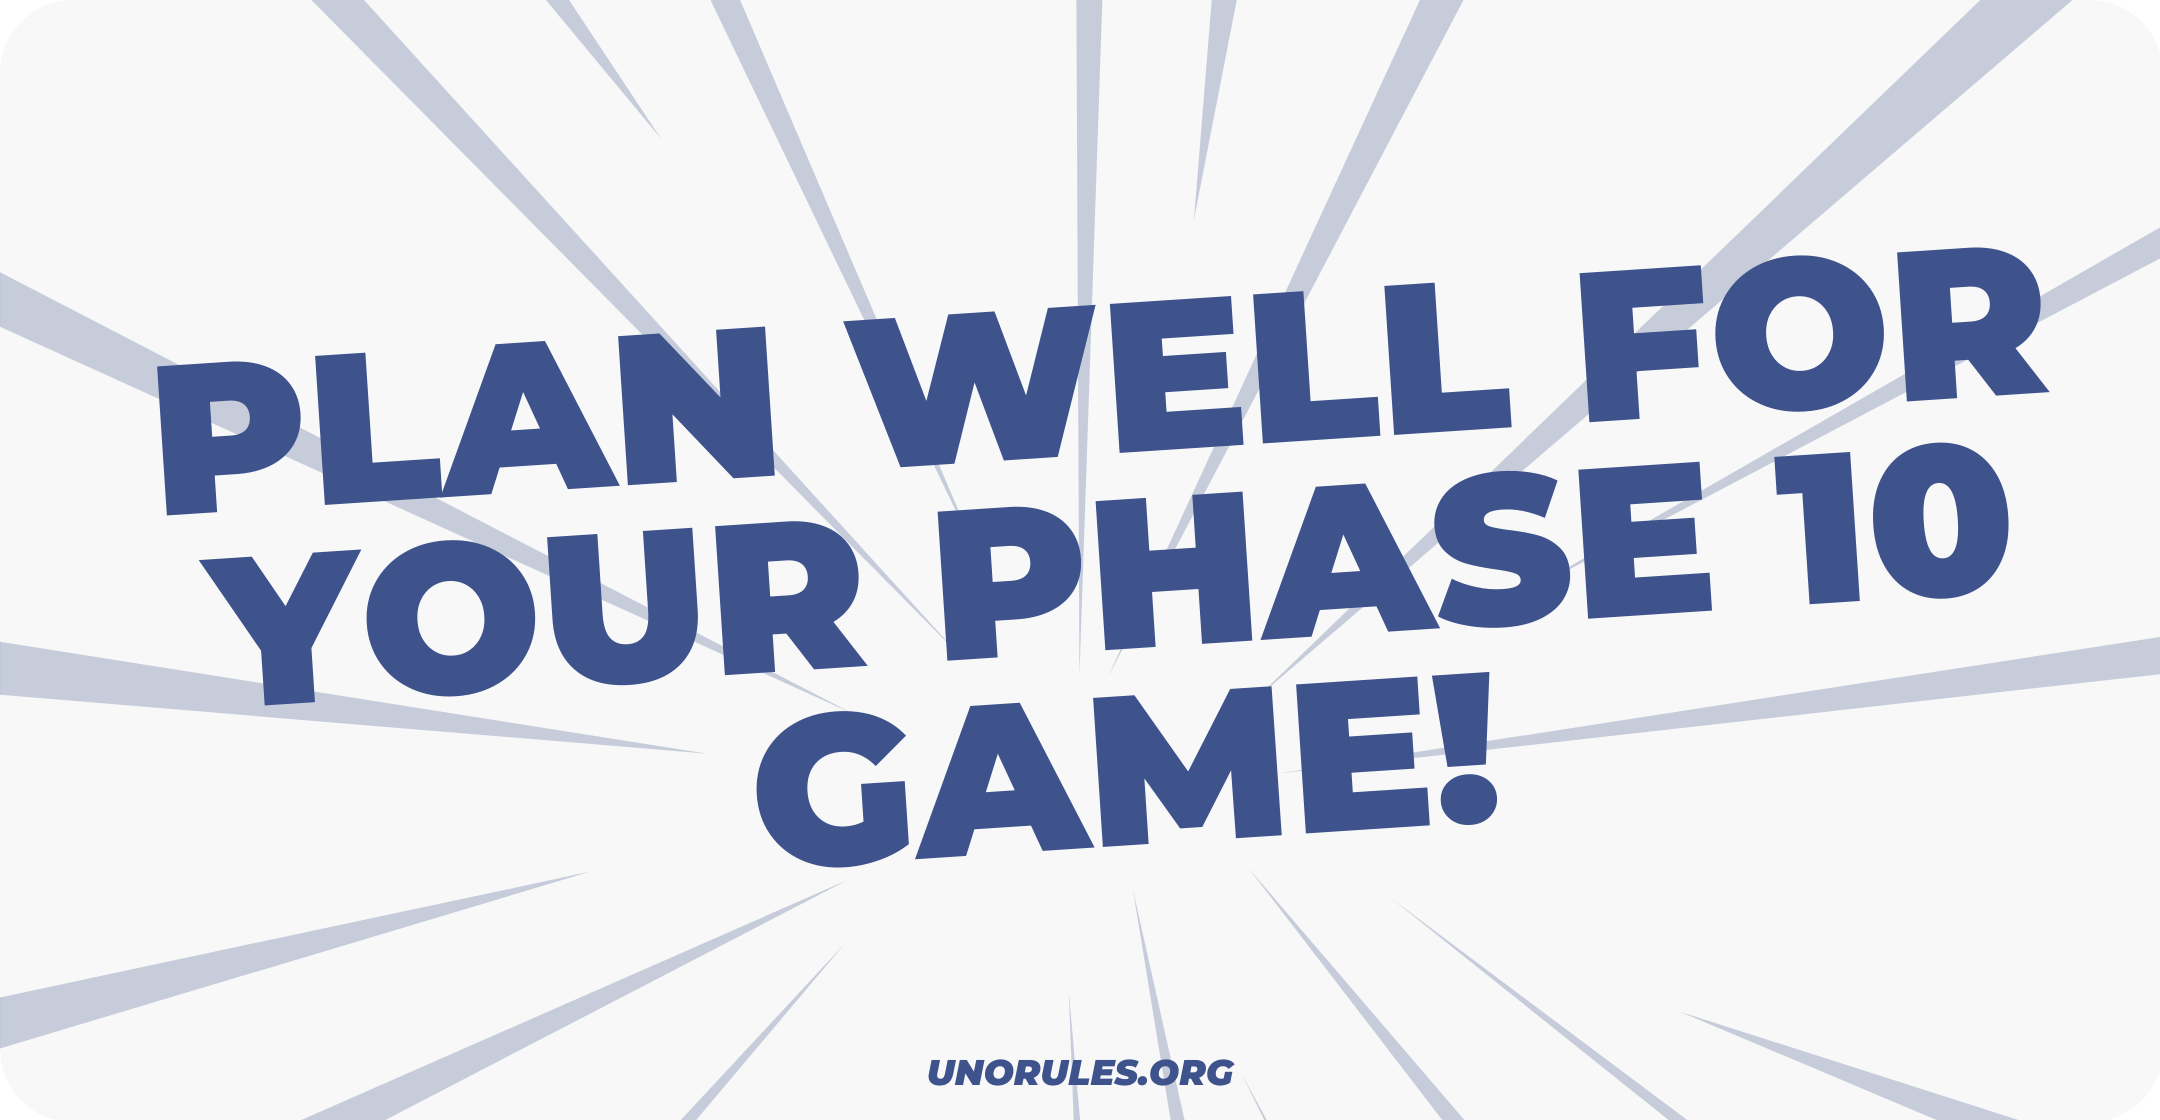 Plan well for your Phase 10 game!